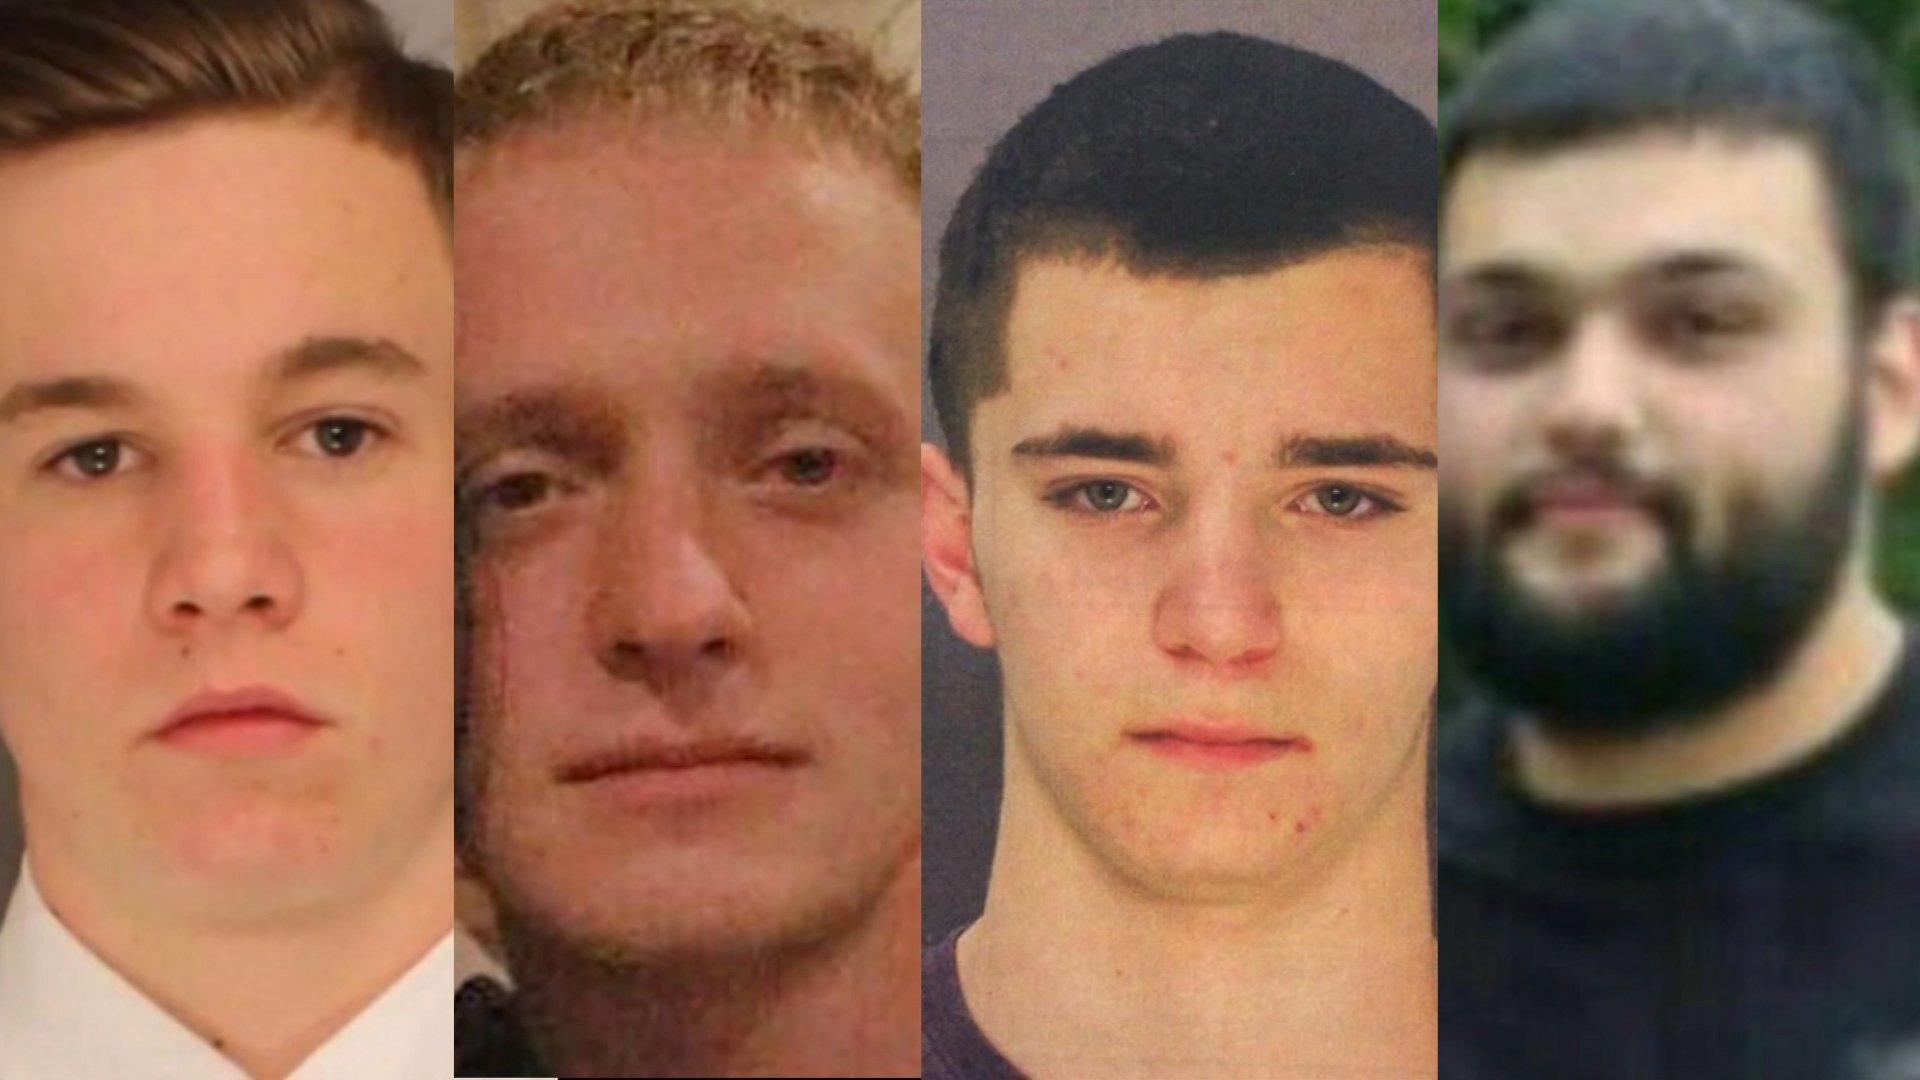 Cosmo Dinardo, 21, admitted to luring four young men to the home in Bucks County with the promise of selling them marijuana. But once there, Dinardo shot and killed the young men, identified as Jimi Patrick, 19, Dean Finocchiaro, 19, Thomas Meo, 21,...